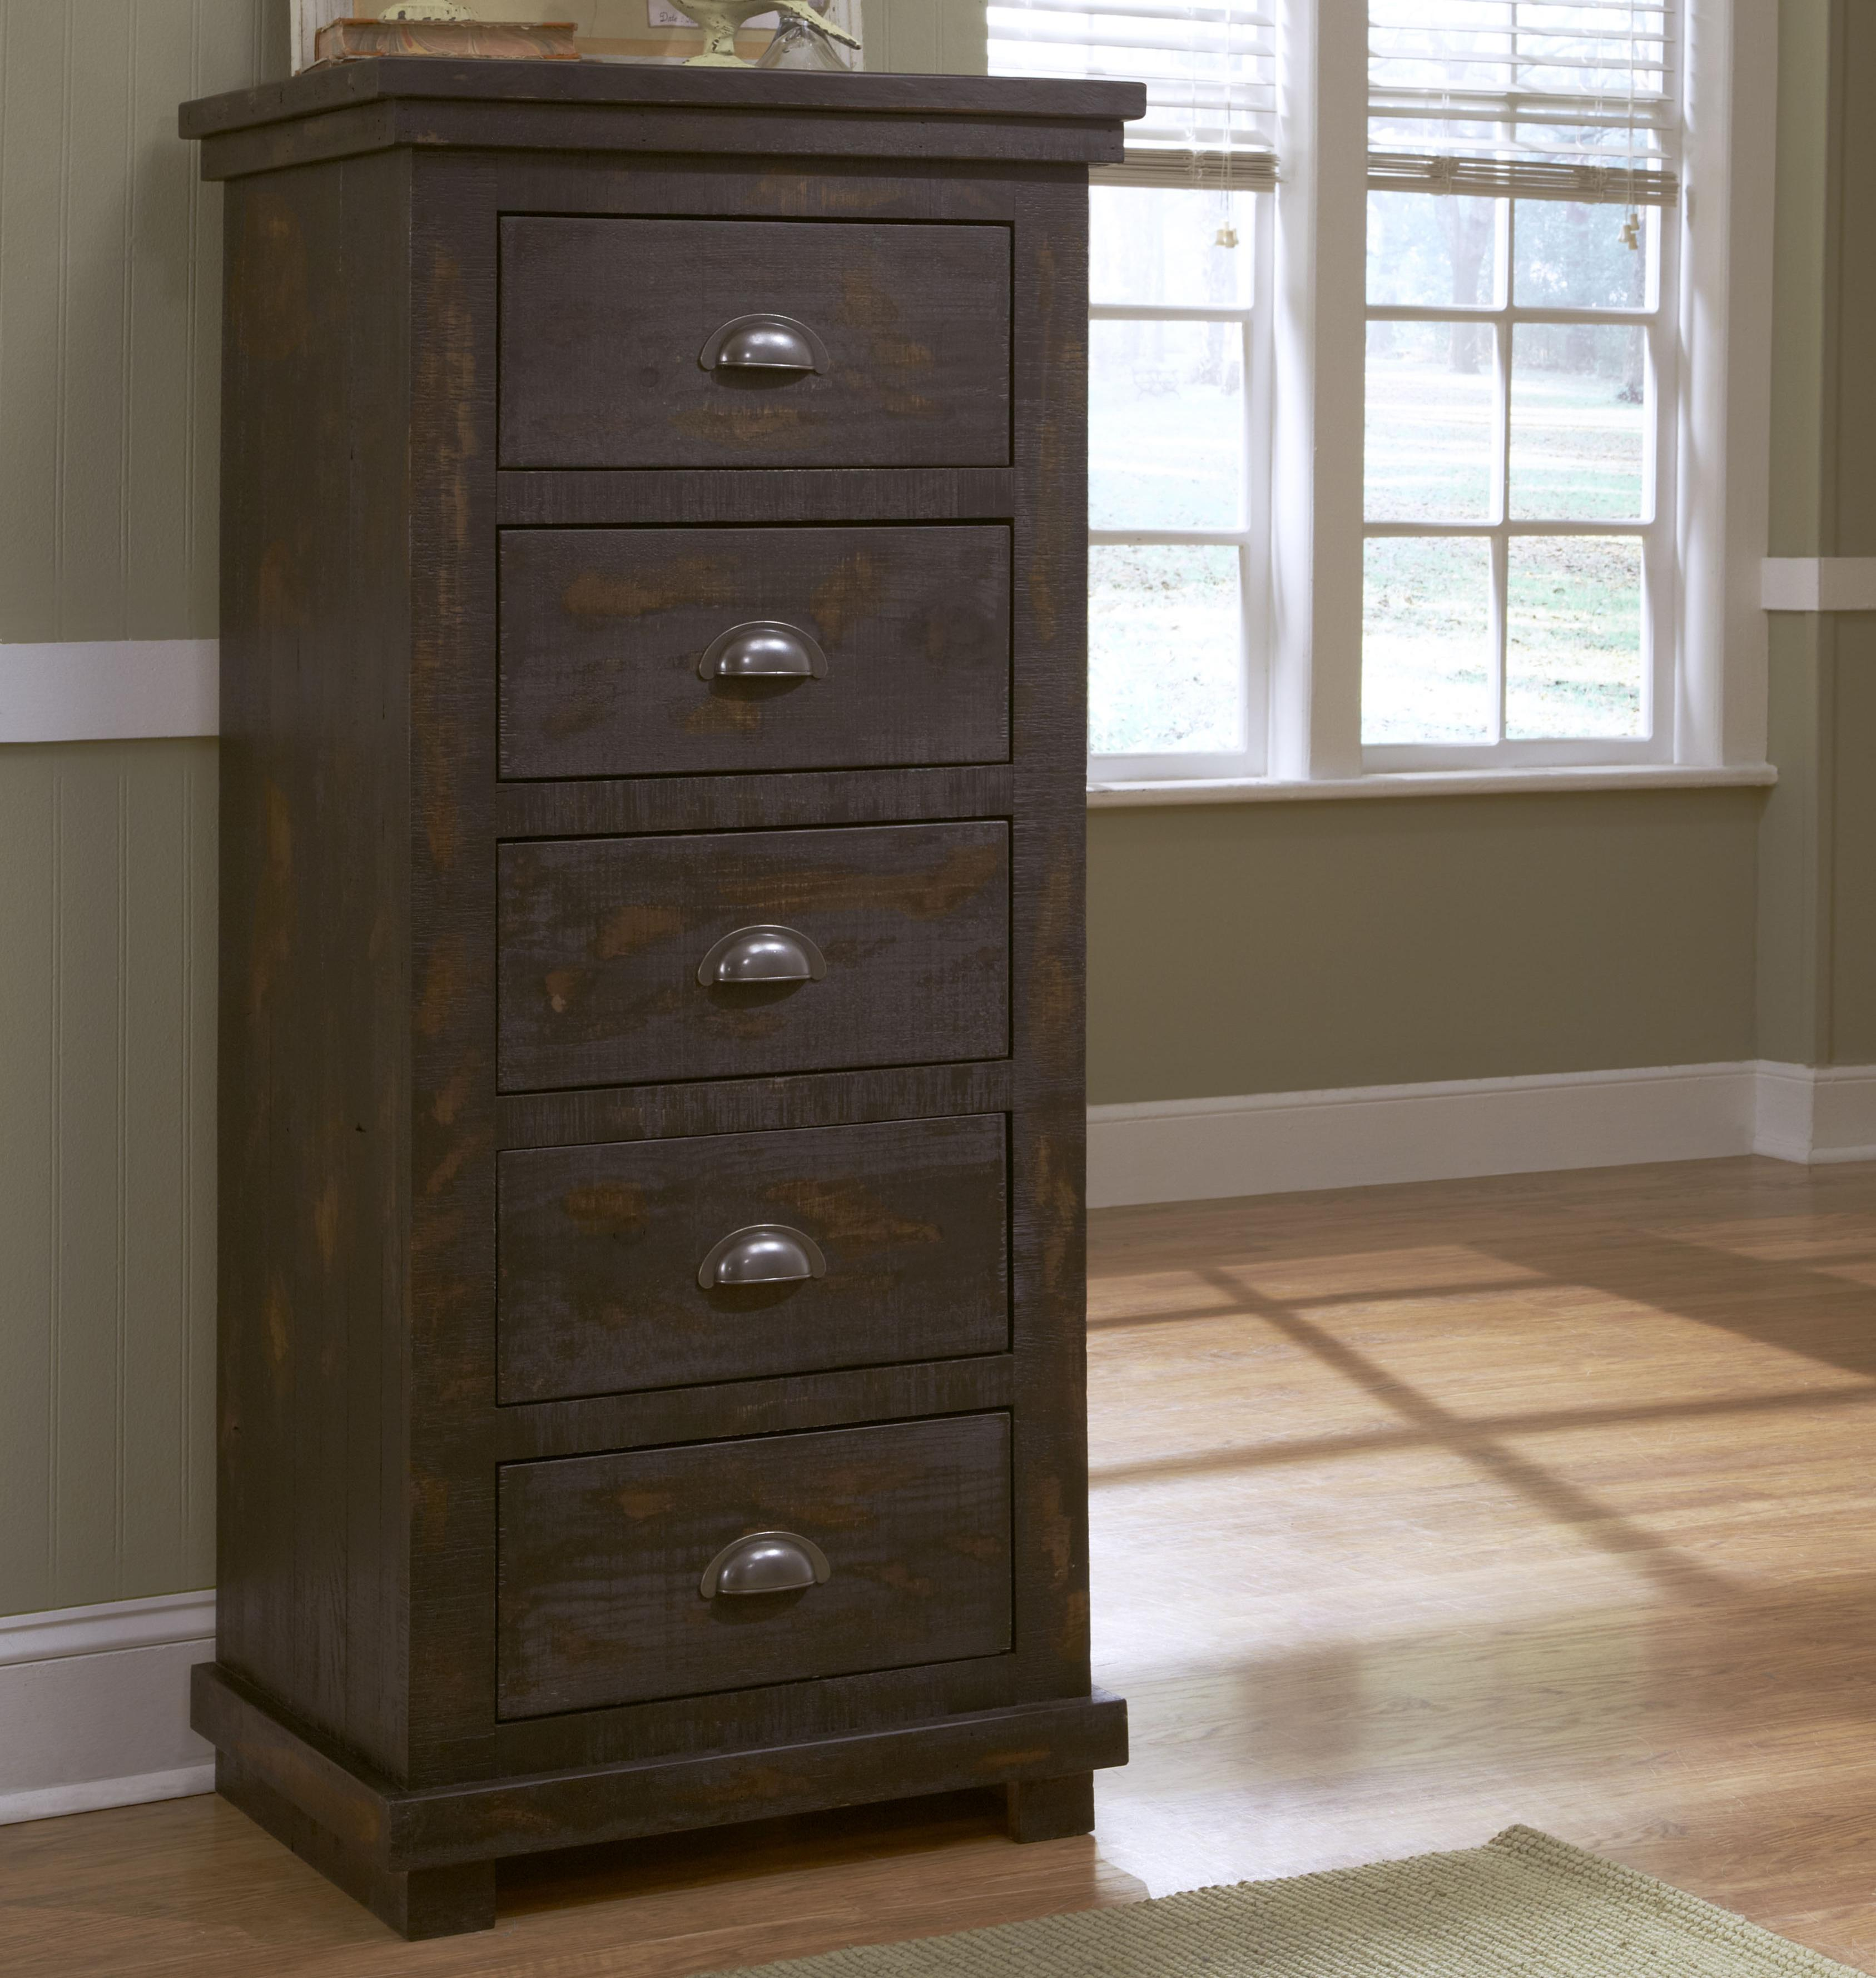 Willow Lingerie Chest by Progressive Furniture at Value City Furniture